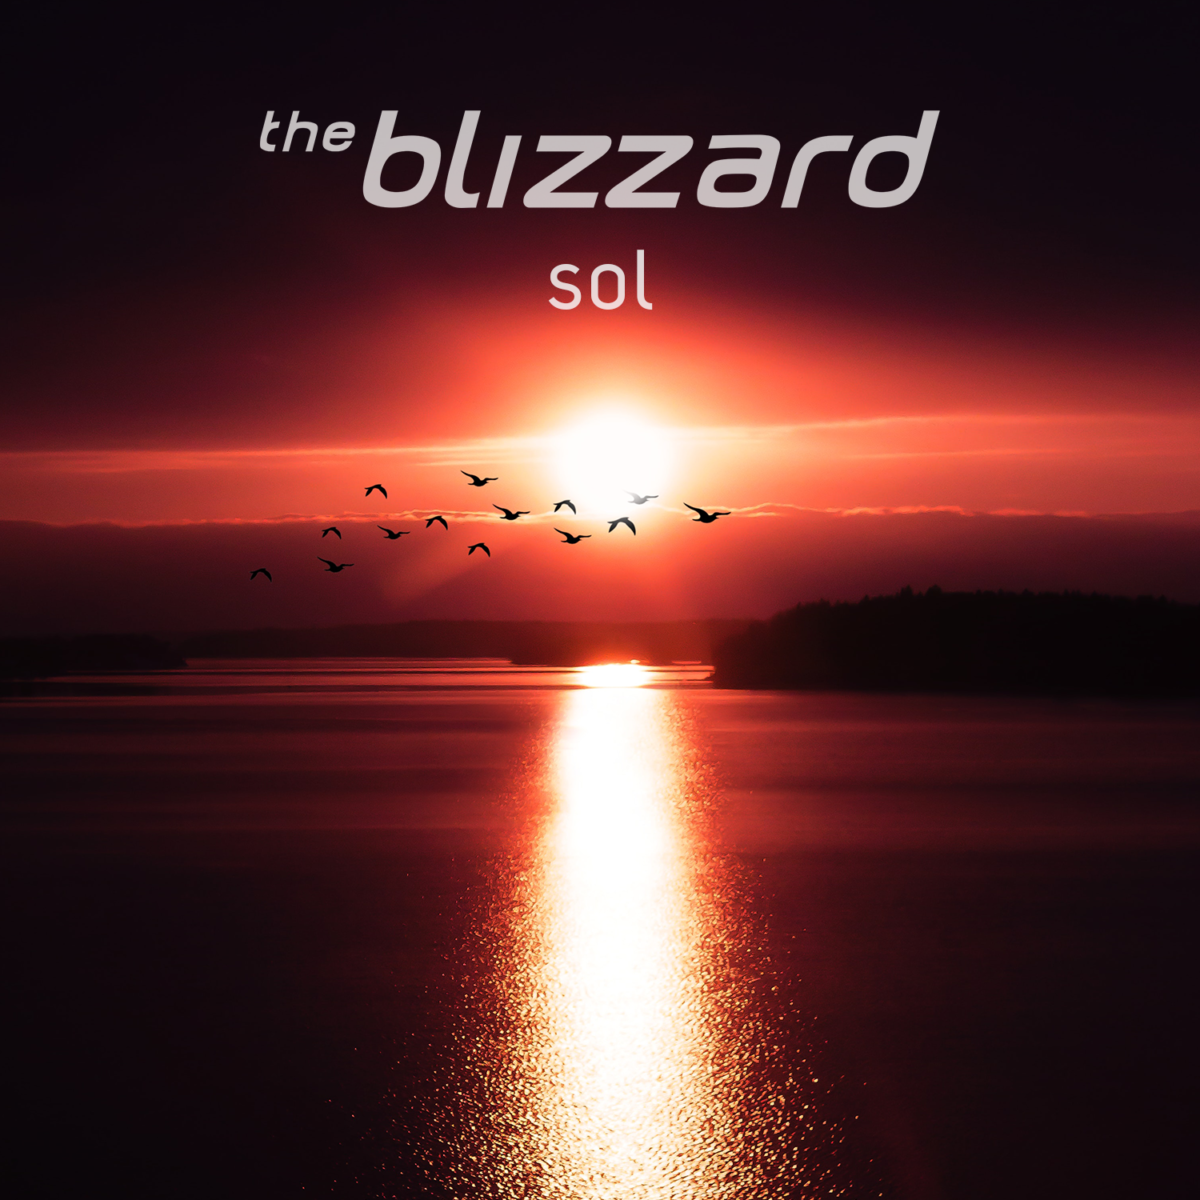 The Blizzard - Sol on Patreon